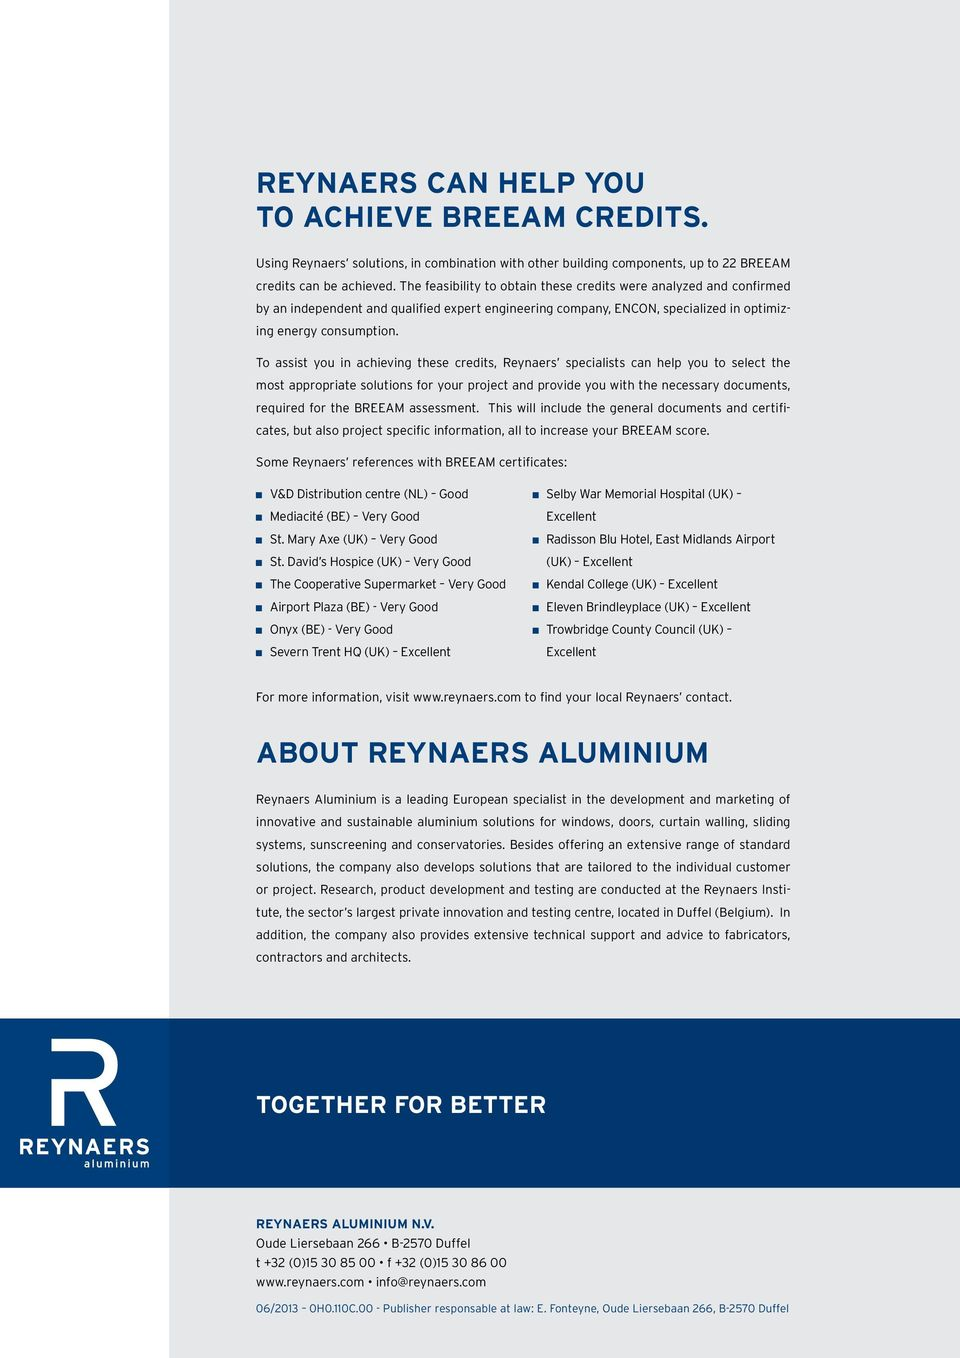 To assist you in achieving these credits, Reynaers specialists can help you to select the most appropriate solutions for your project and provide you with the necessary documents, required for the